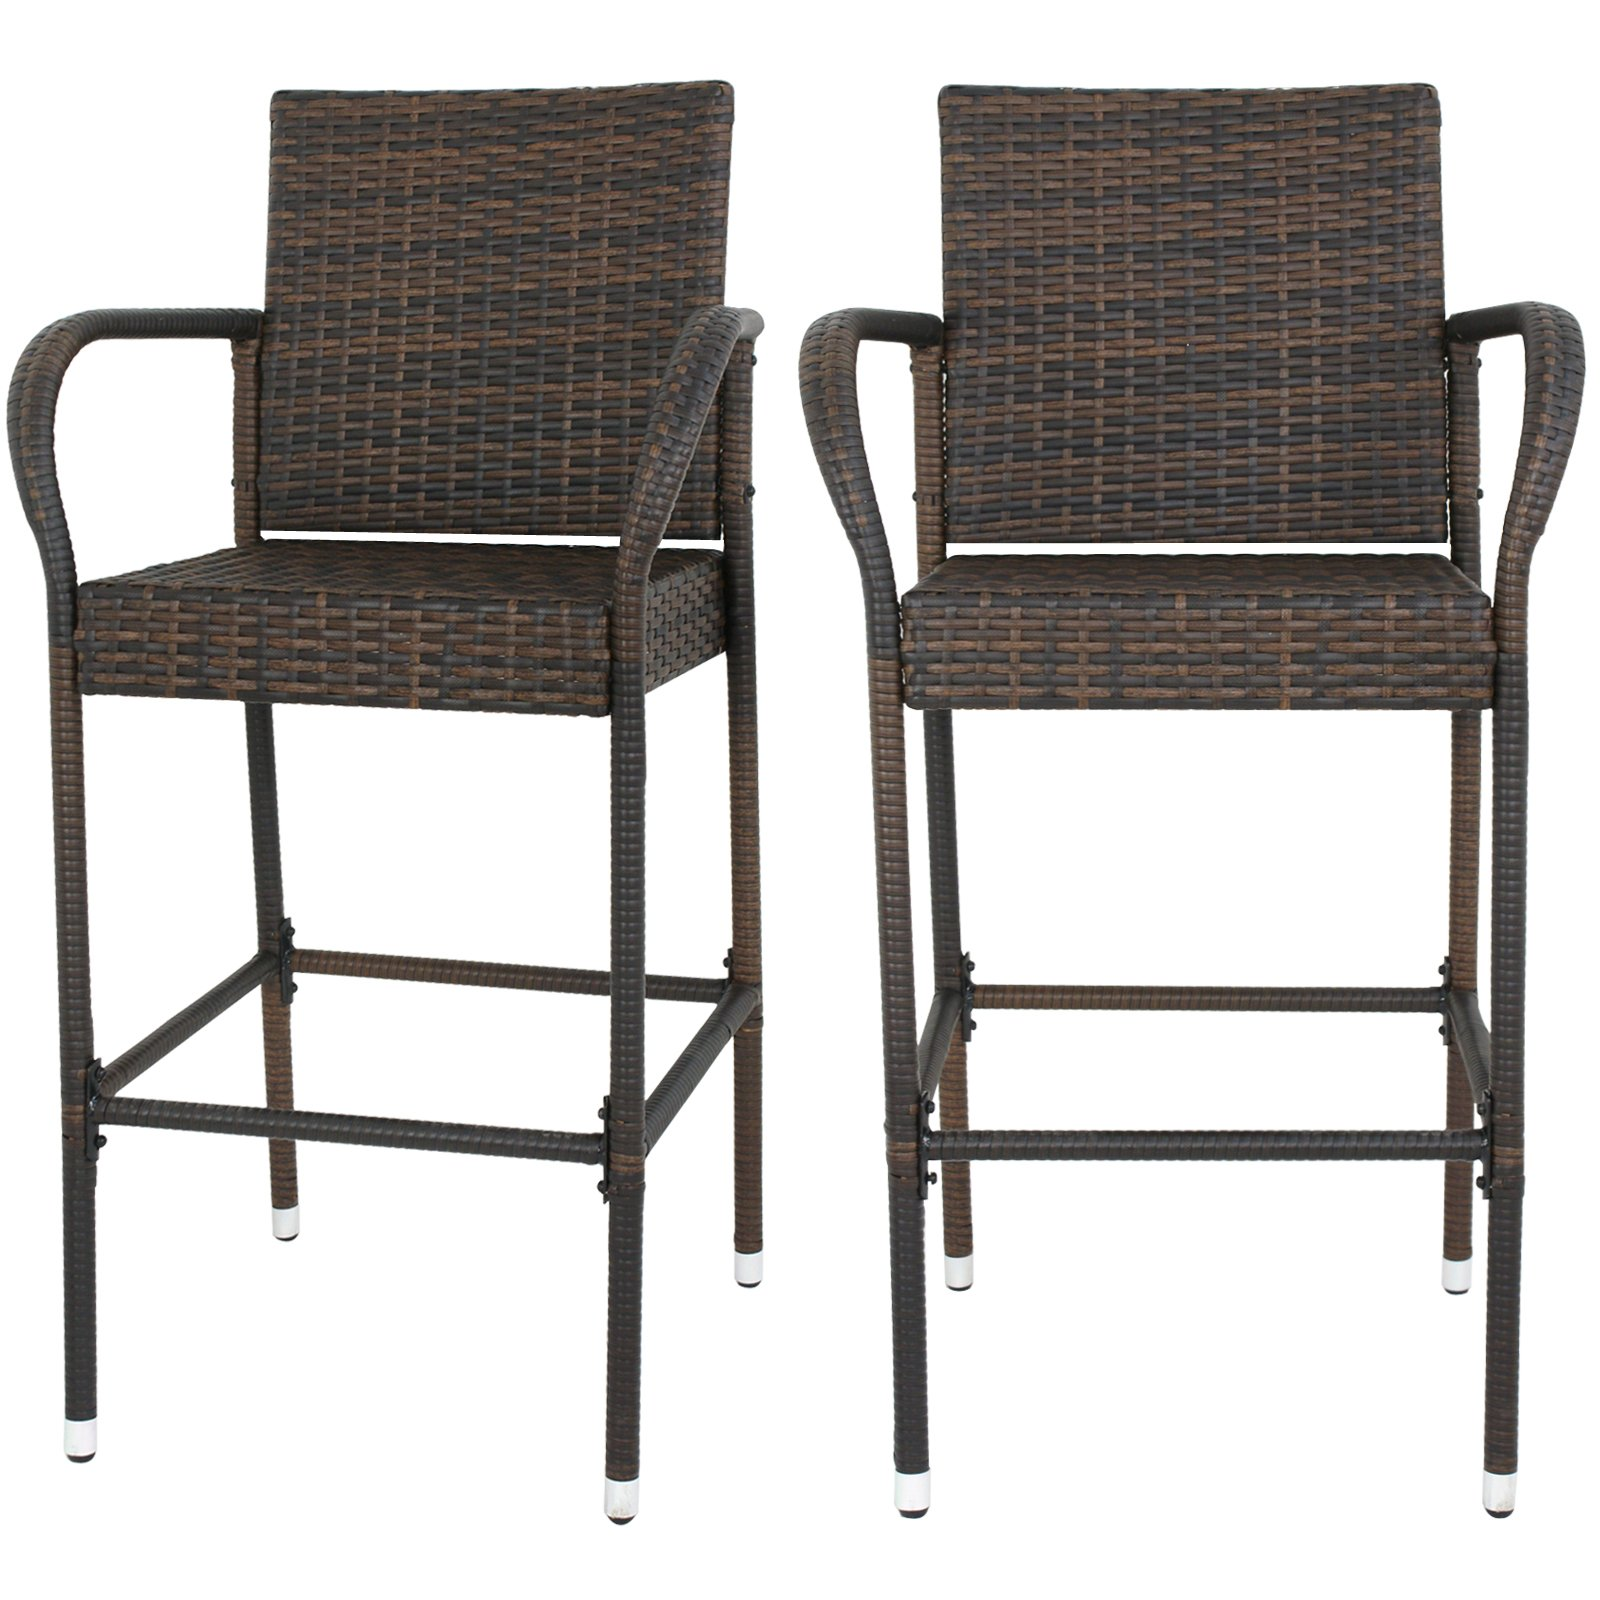 F2C Pack of 2 Brown Wicker Barstool All Weather Dining Chairs Outdoor Patio Furniture Bar Stools